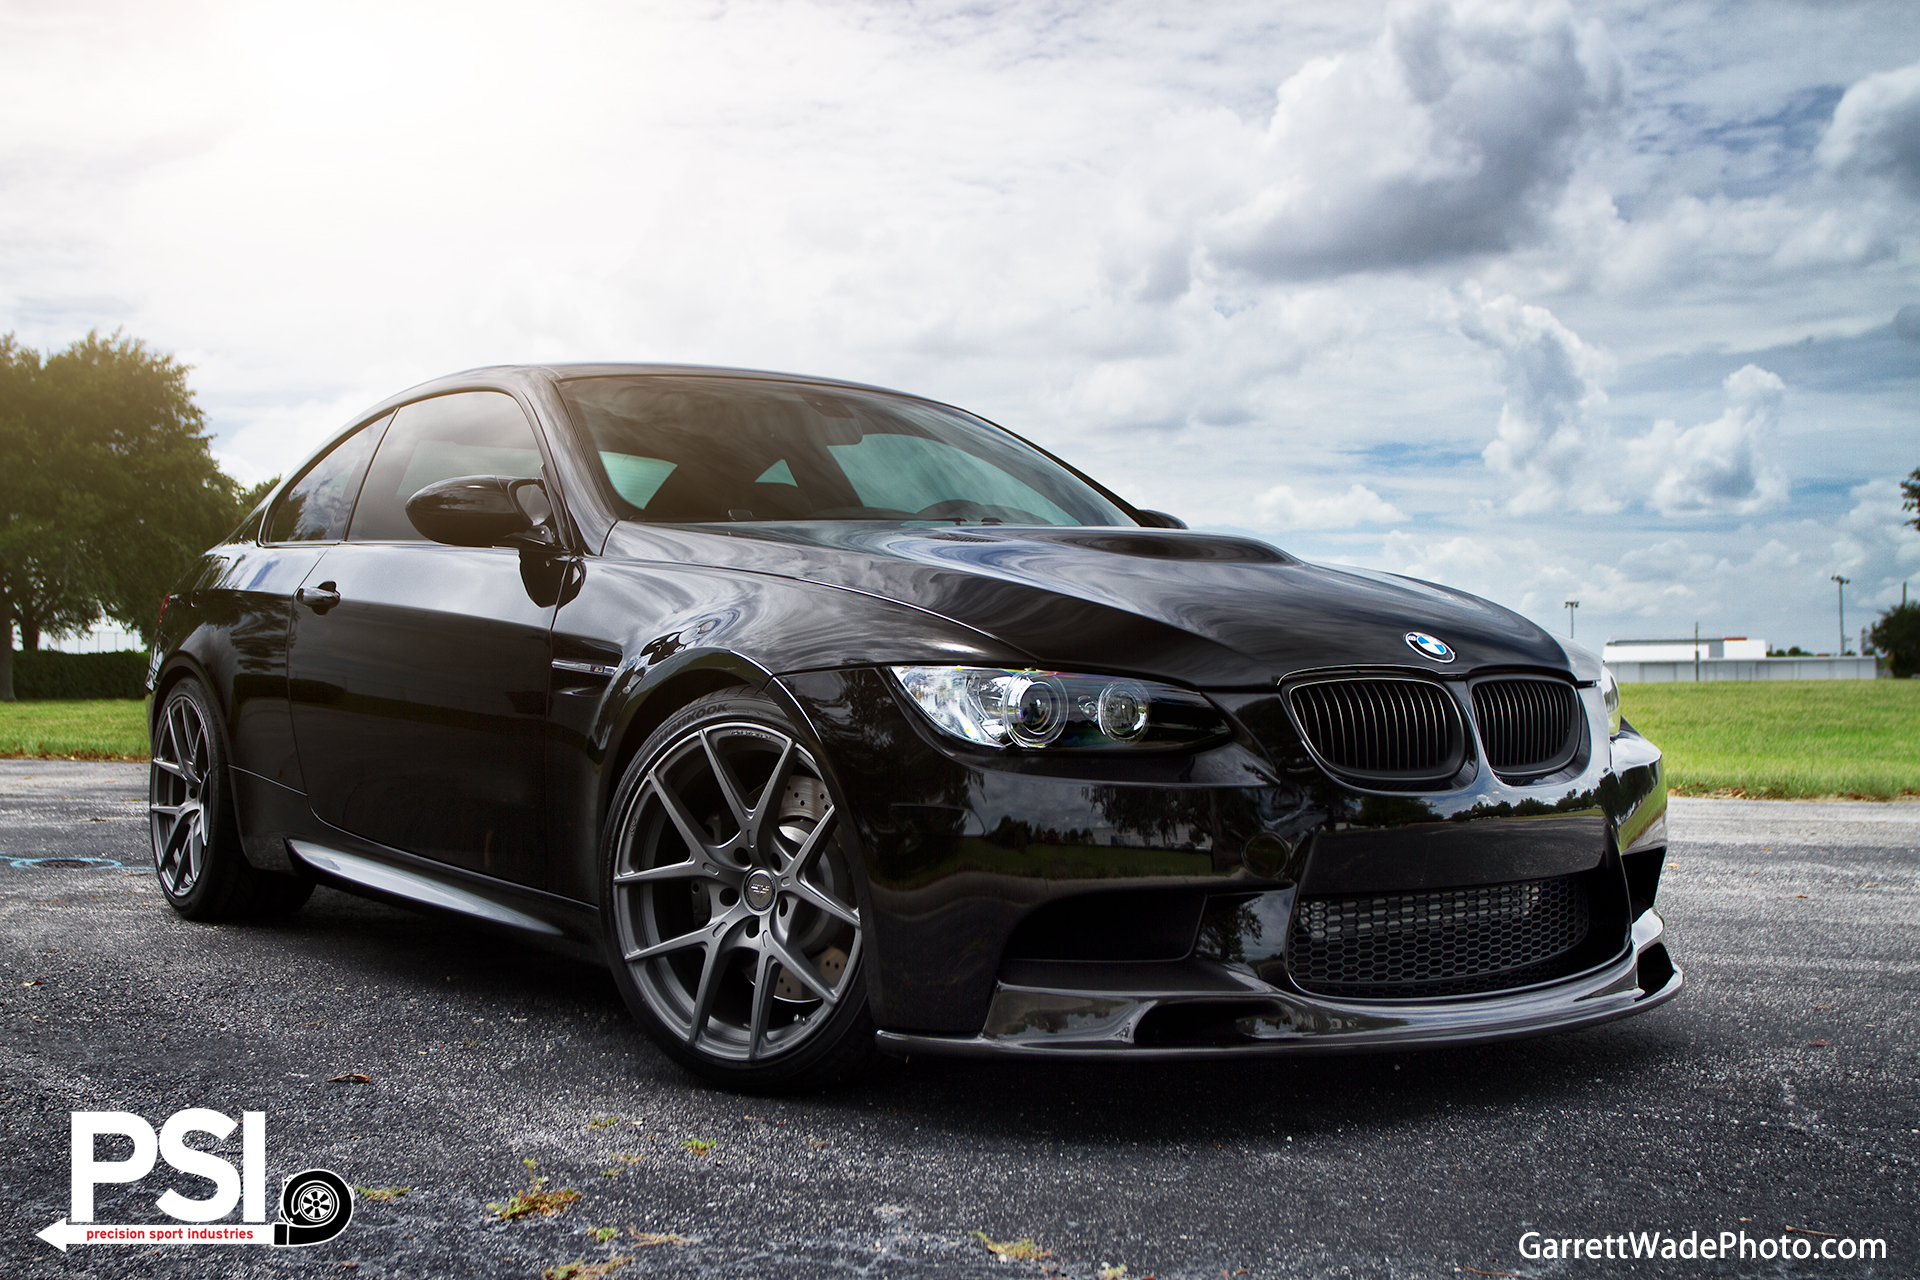 jet black bmw e92 m3 by psi invites us to the dark side autoevolution. Black Bedroom Furniture Sets. Home Design Ideas